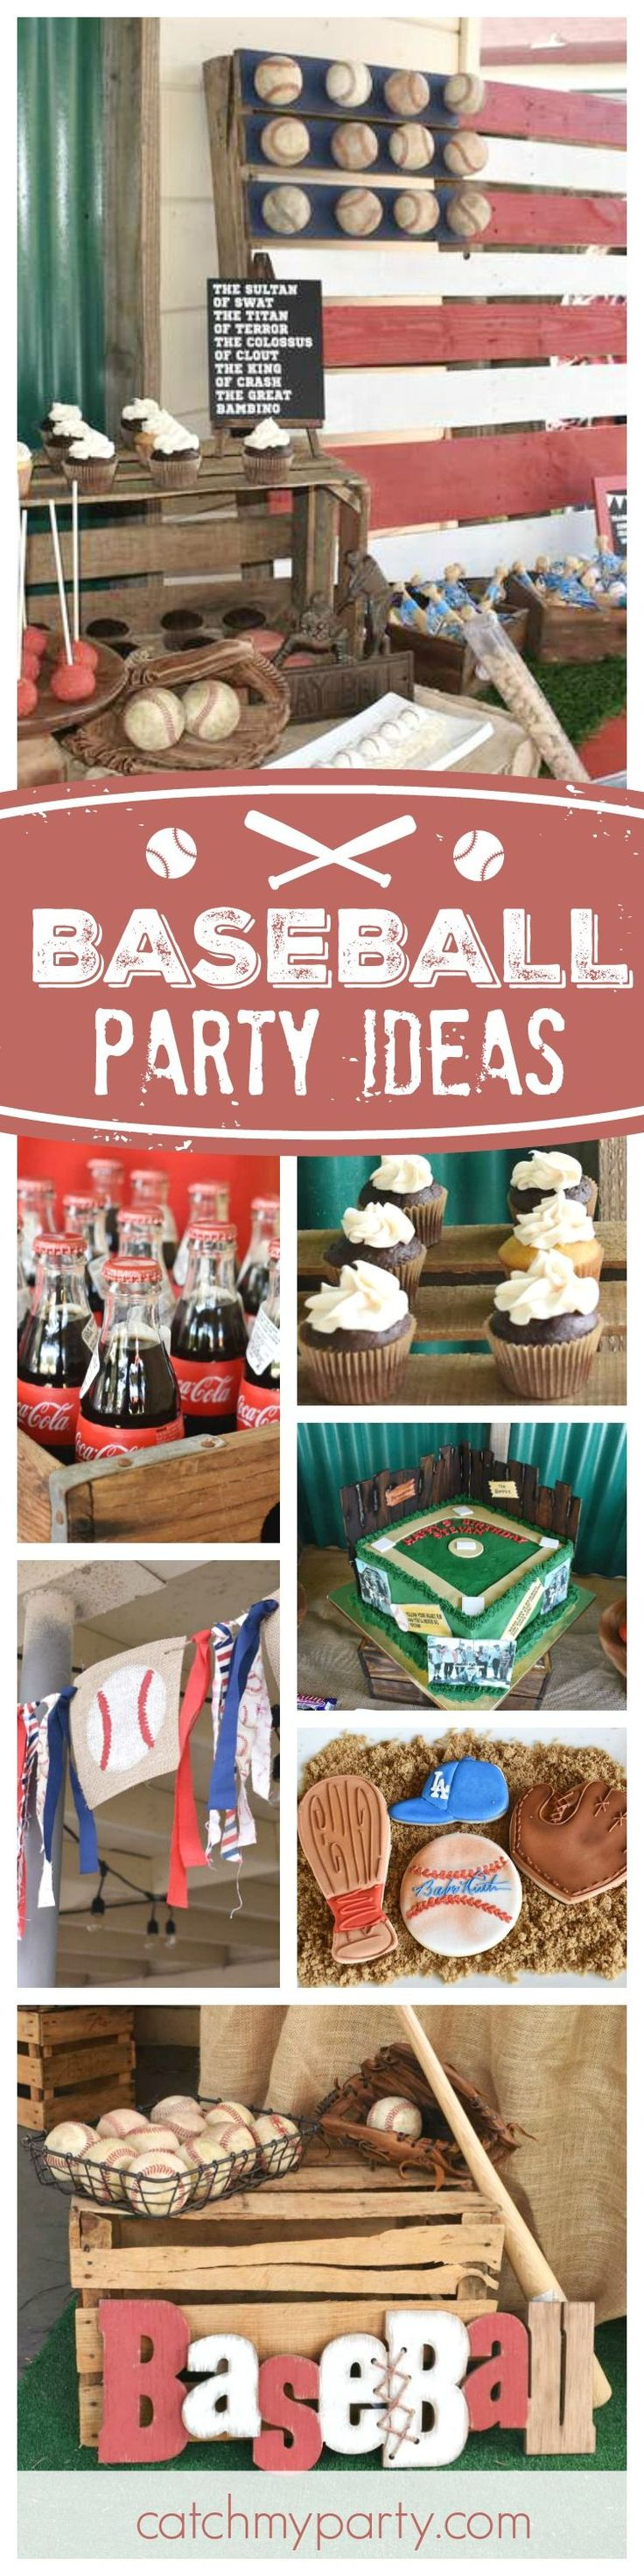 Check out this awesome 'The Sandlot' baseball birthday party! The baseball cookies are fantastic!! See more party ideas and share yours at CatchMyParty.com